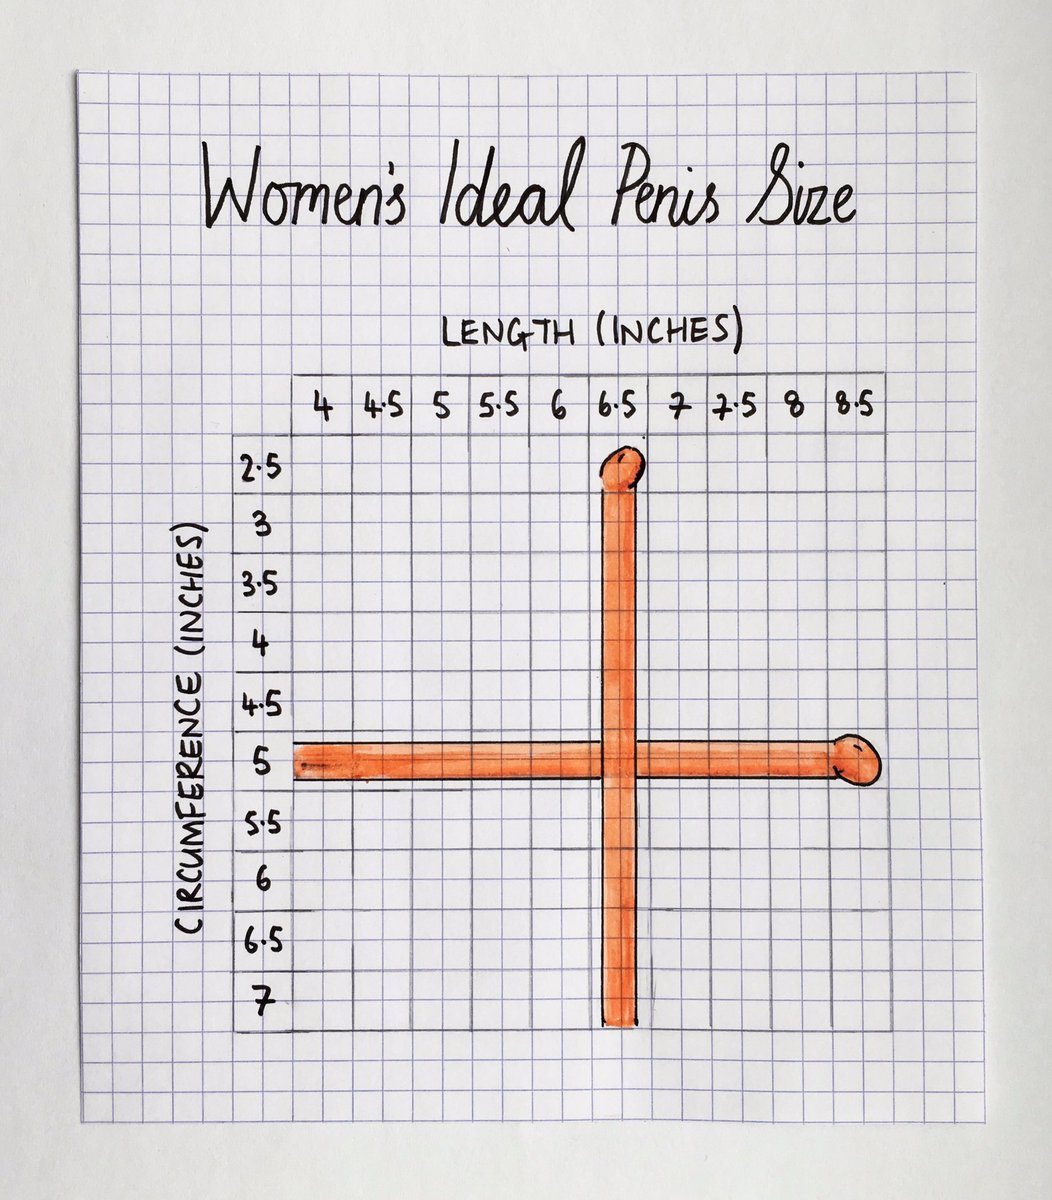 What penis length do women prefer